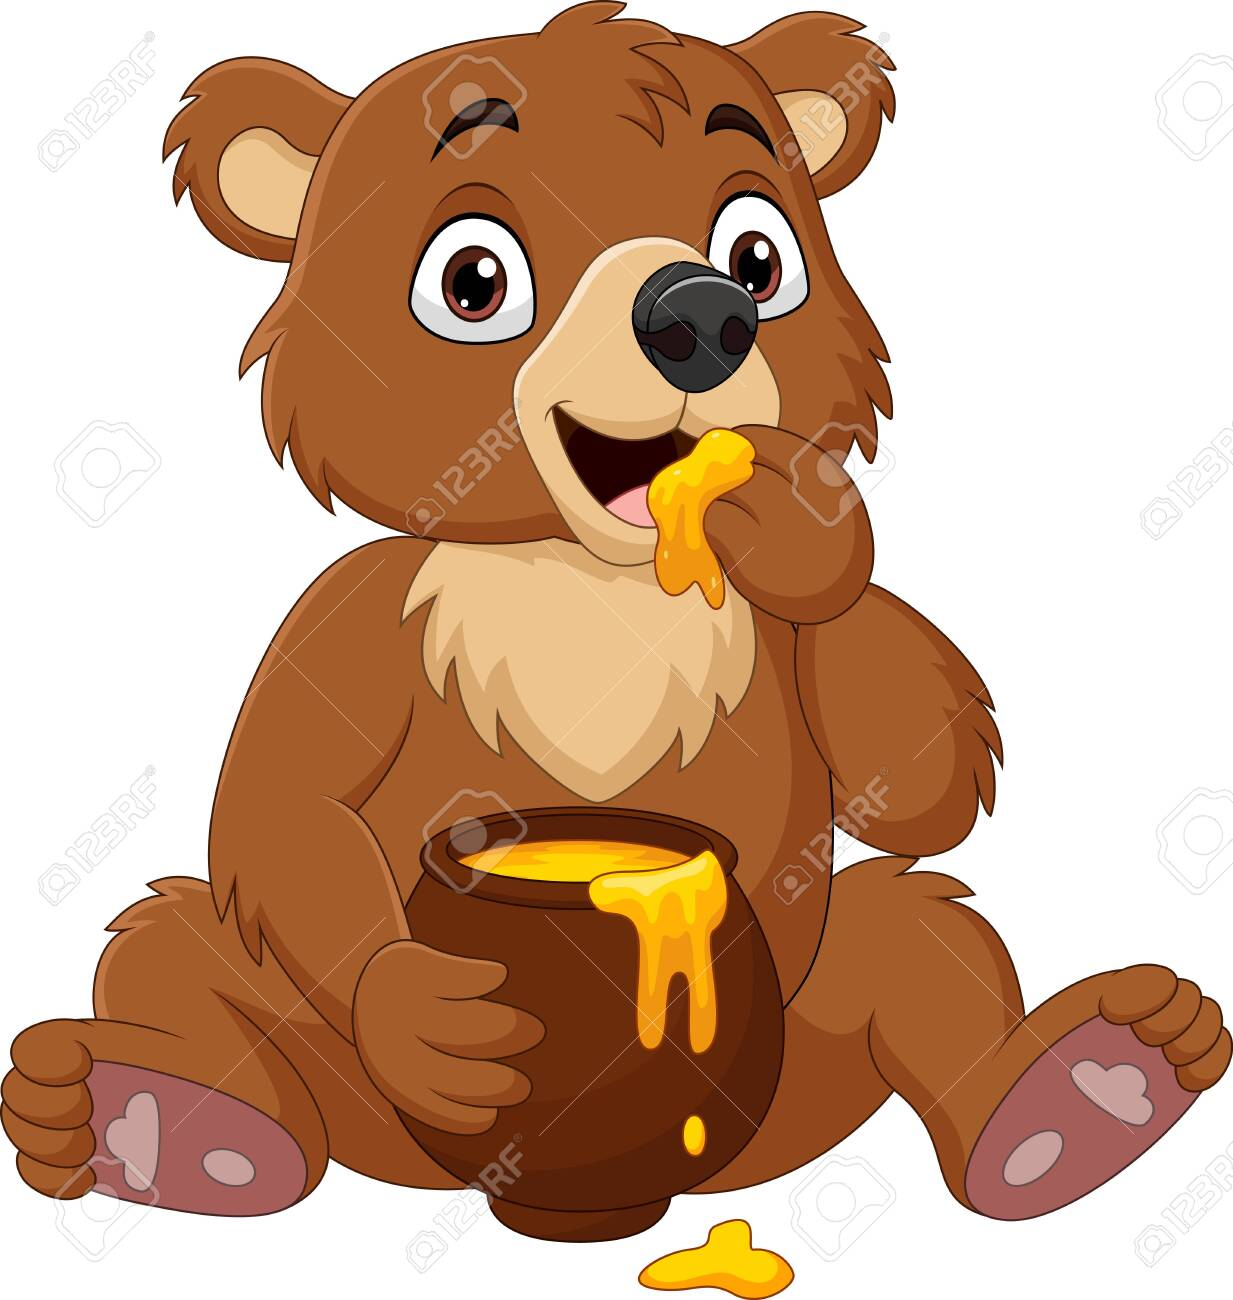 Vector illustration of Cartoon baby bear sitting and eating honey from the pot - 142438116